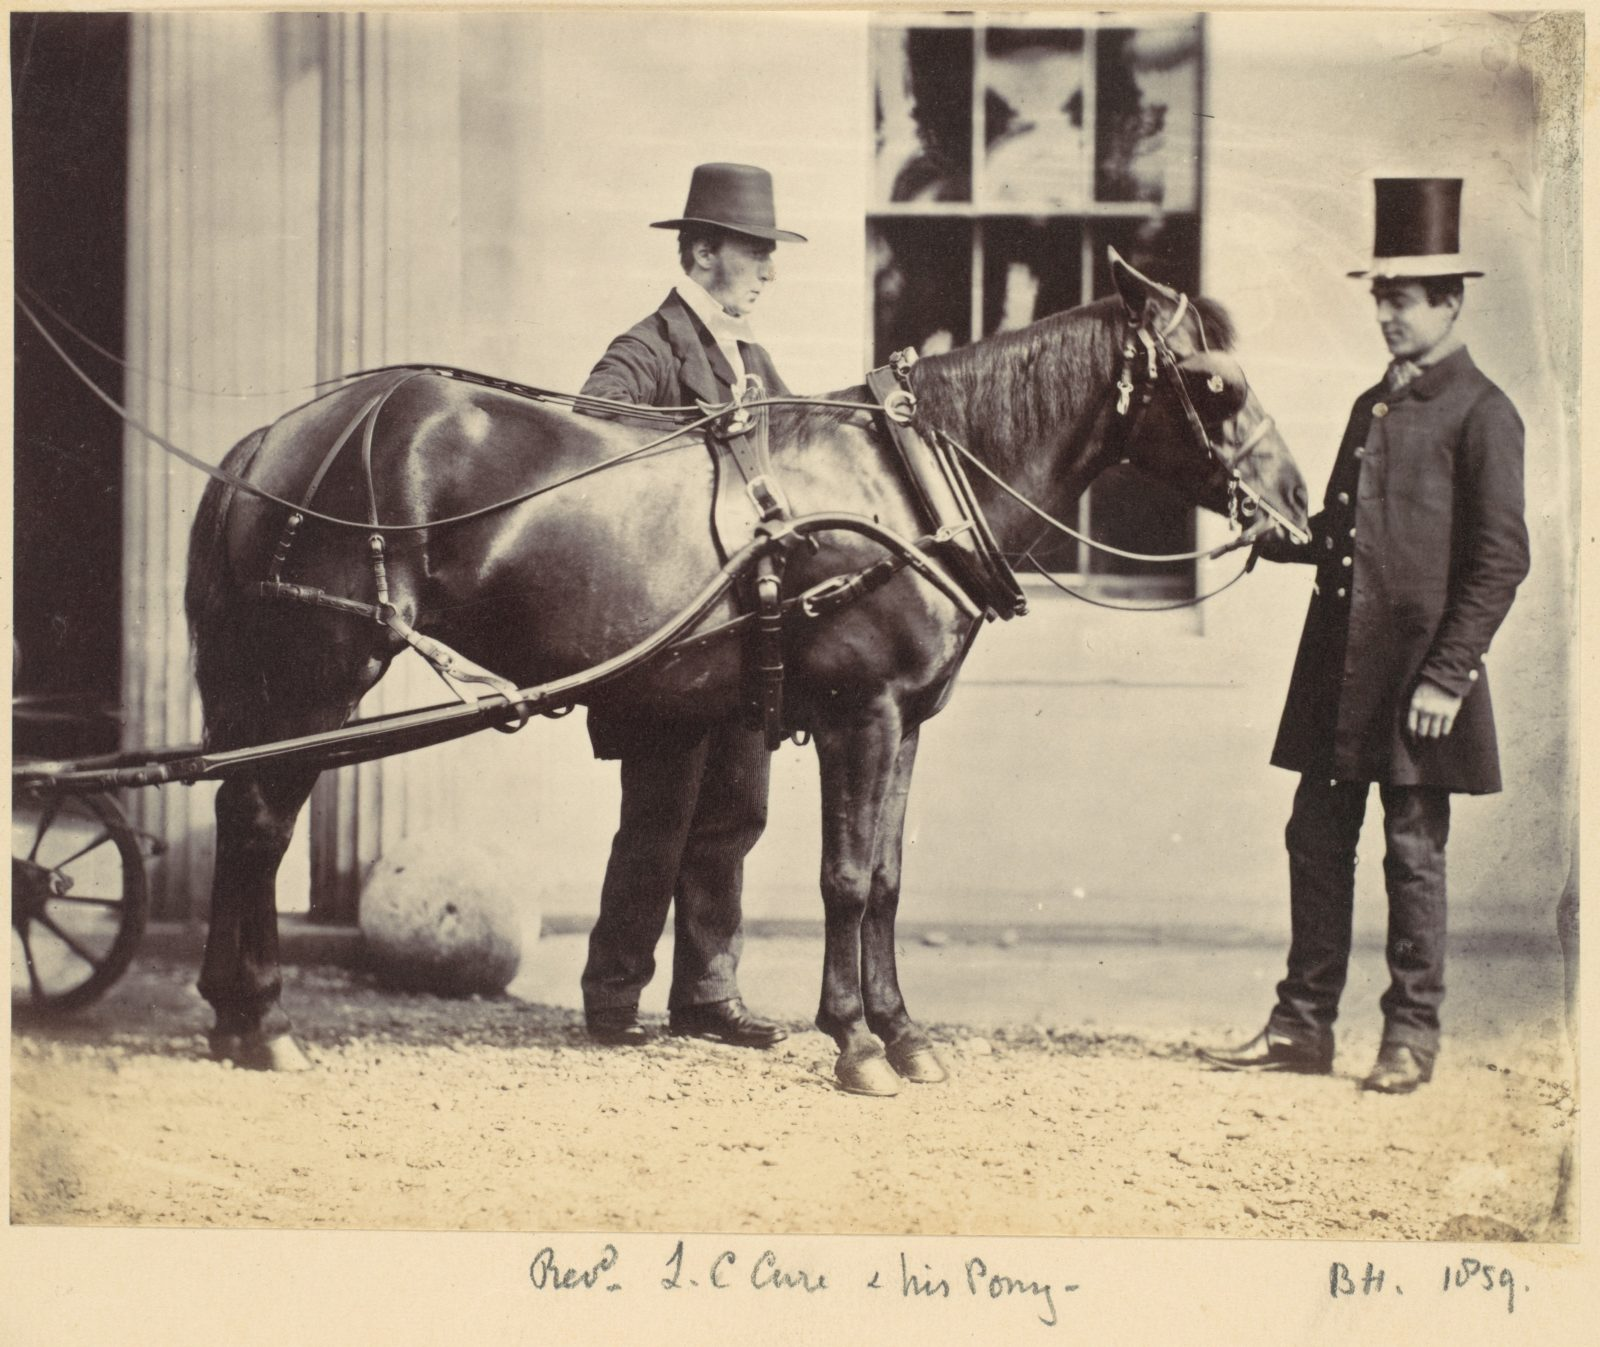 Reverend L. C. Cure and His Pony